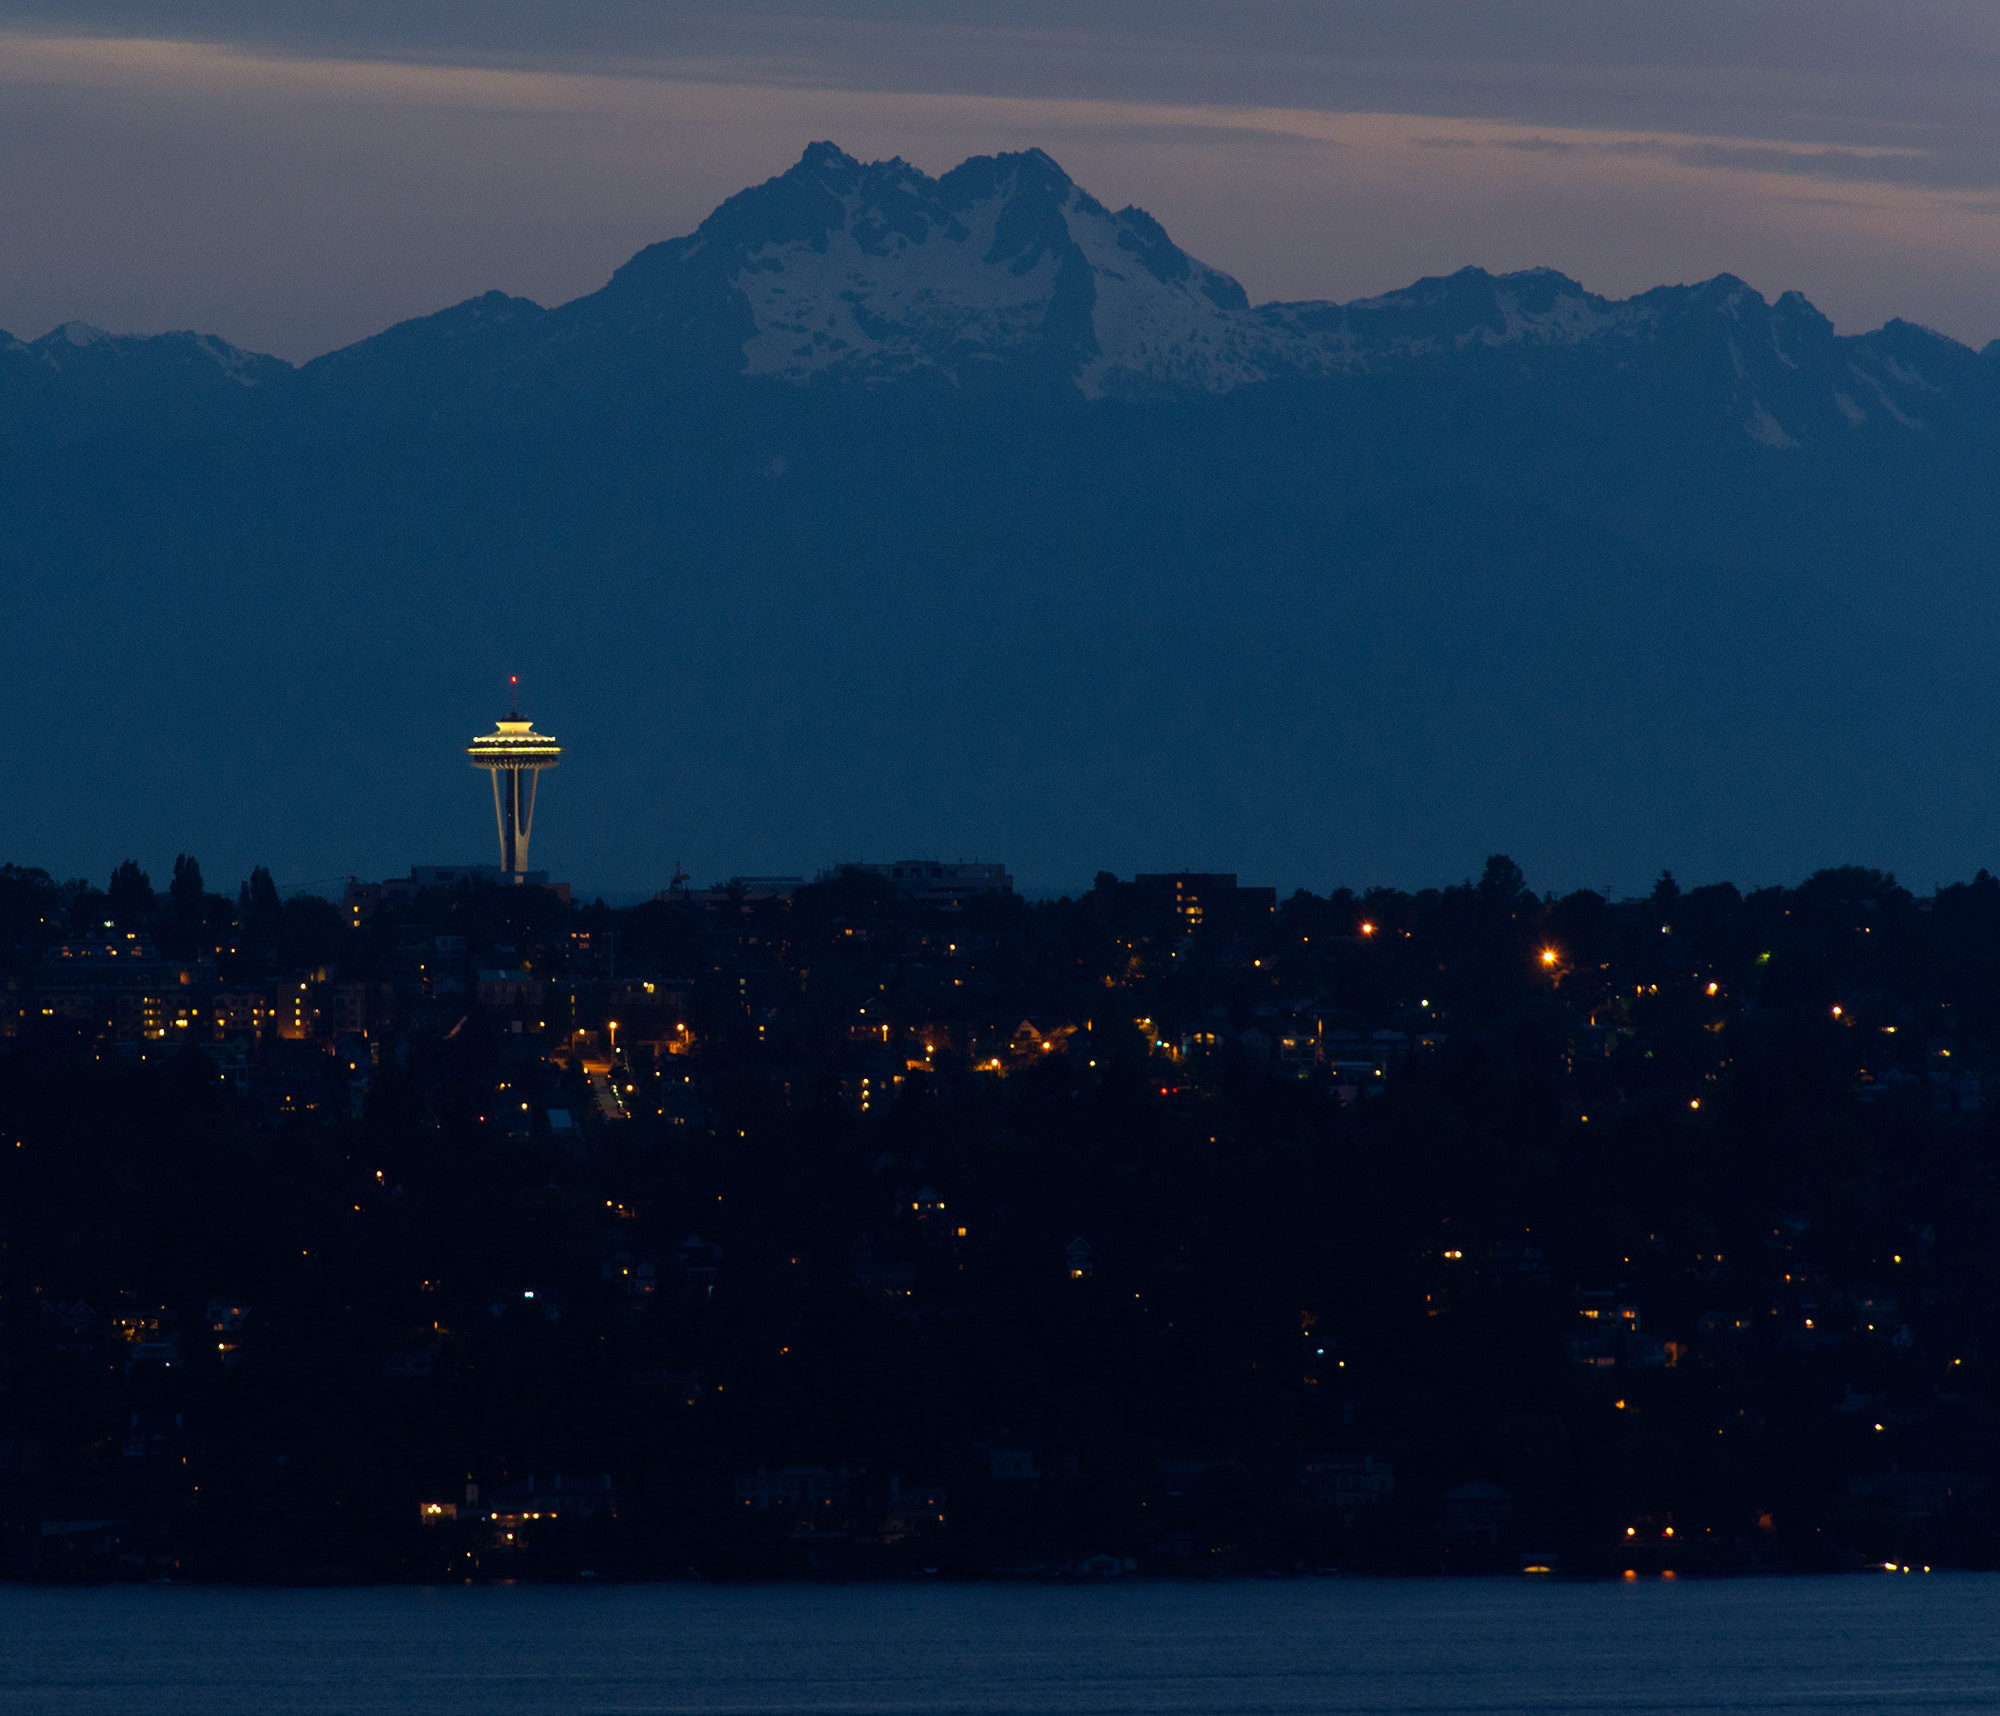 Photograph Olympic Mountains by Tobias Smith on 500px